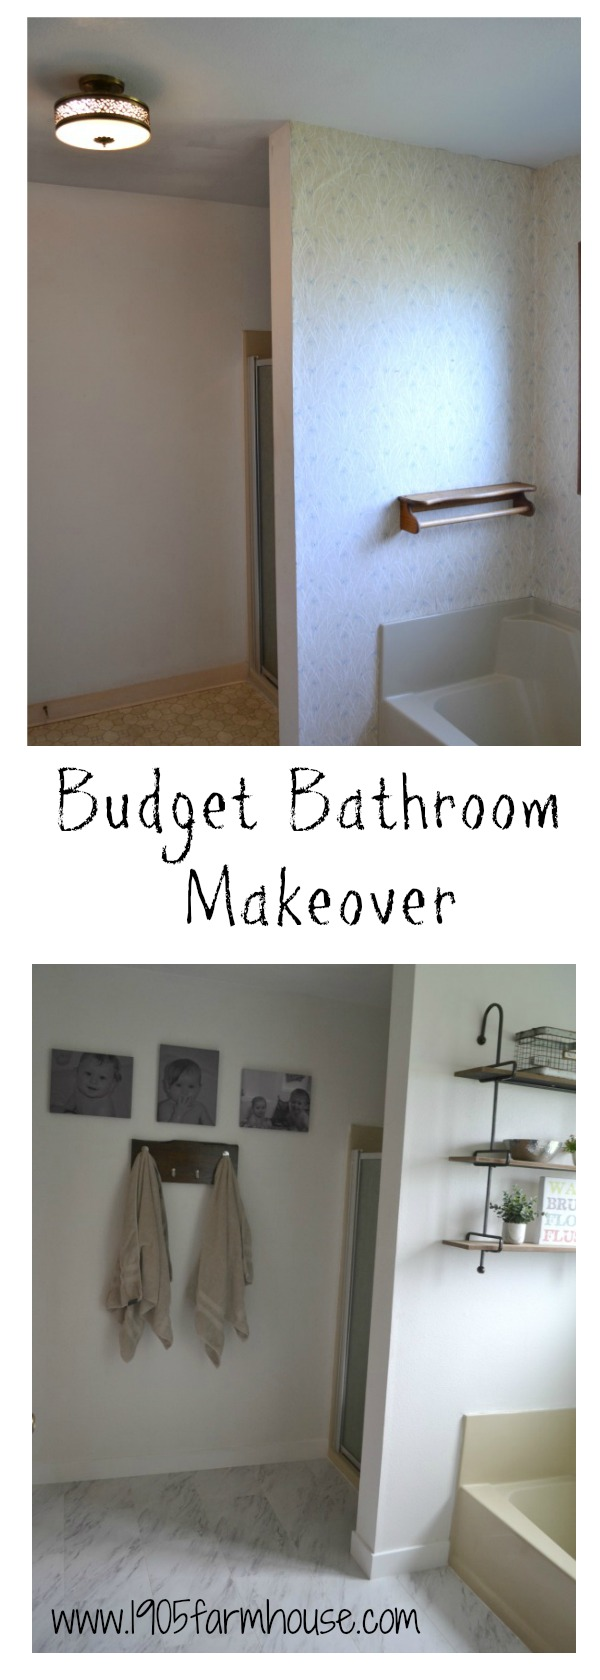 An easy bathroom budget makeover using paint, new flooring and trim #bathroommakeover #diy #farmhouseupdate